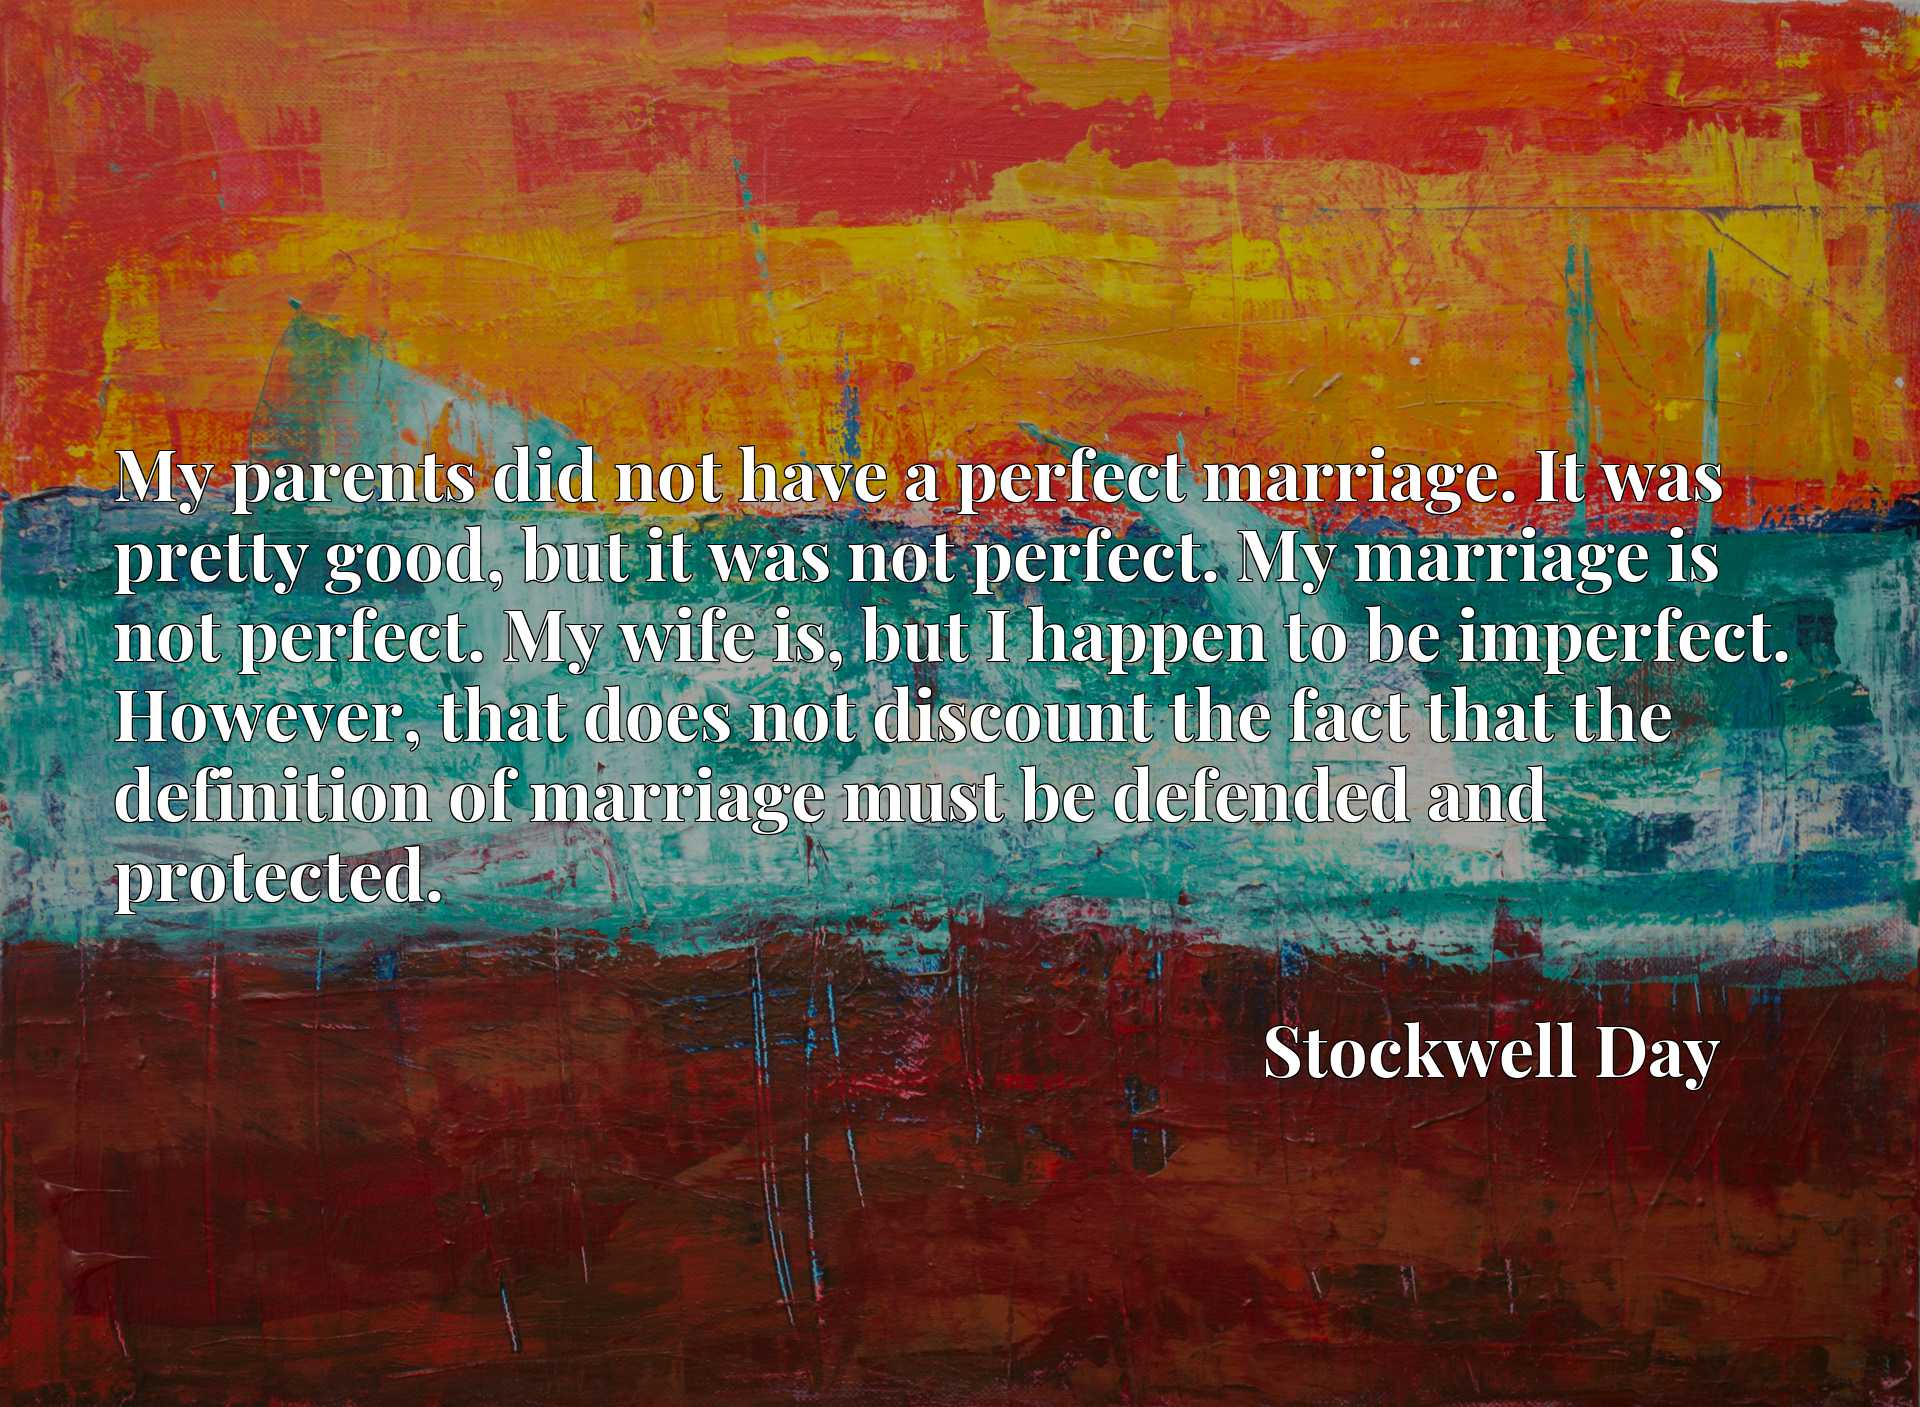 My parents did not have a perfect marriage. It was pretty good, but it was not perfect. My marriage is not perfect. My wife is, but I happen to be imperfect. However, that does not discount the fact that the definition of marriage must be defended and protected.